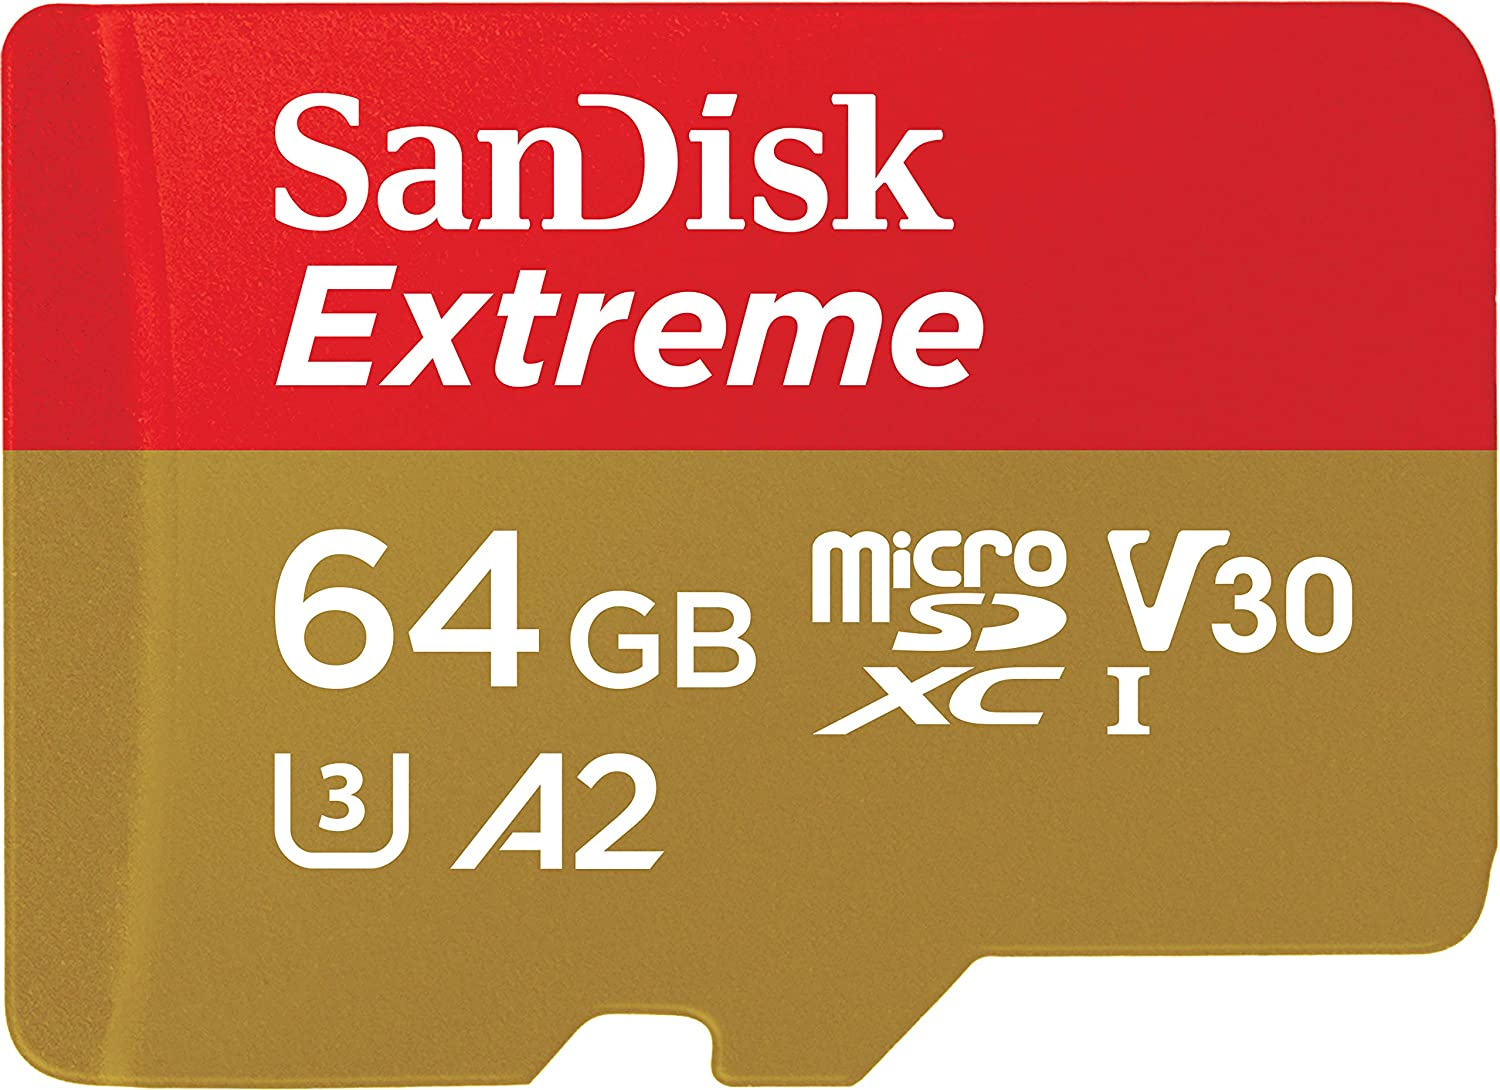 Sandisk best sd card for raspberry pi 4 in 2020